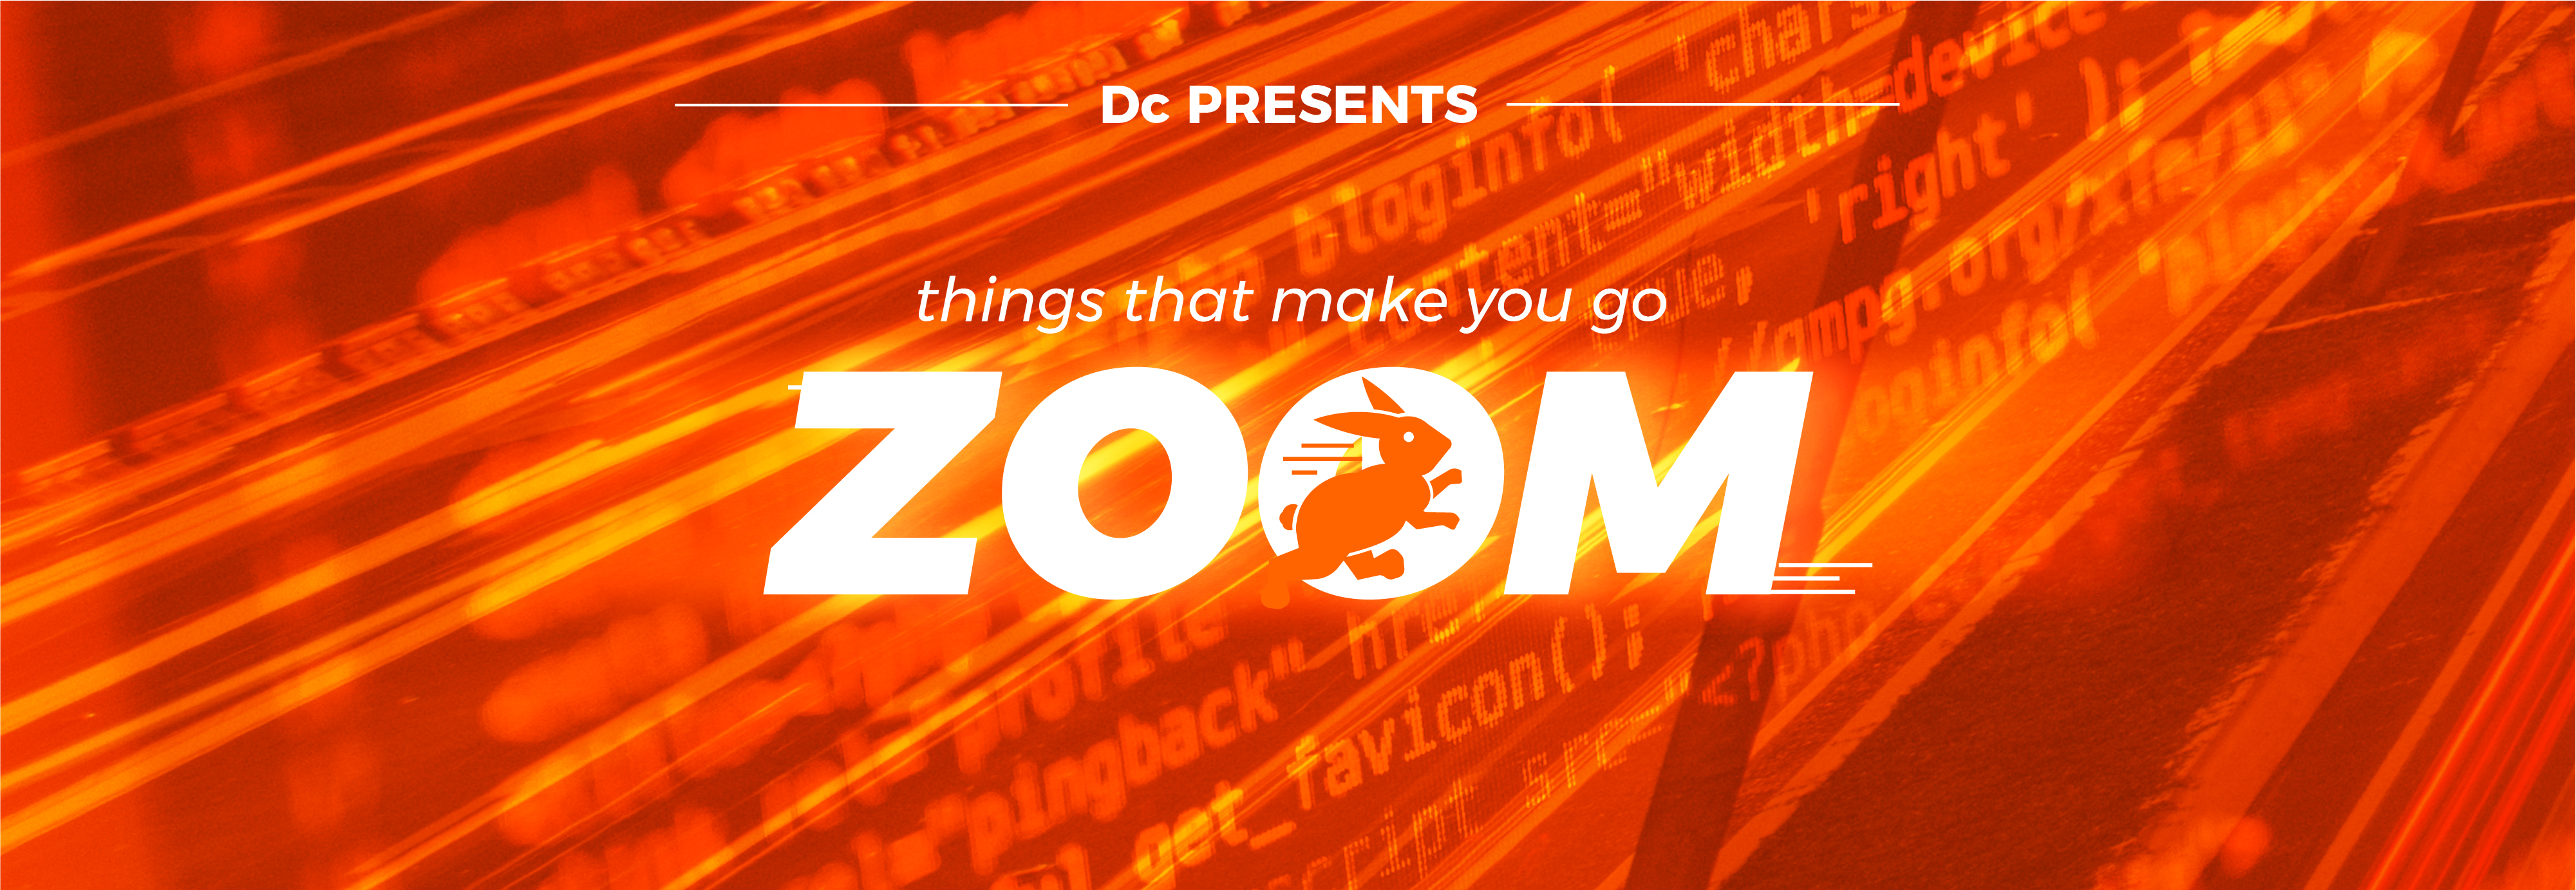 Dc Presents:  Things That Make You Go ZOOM!